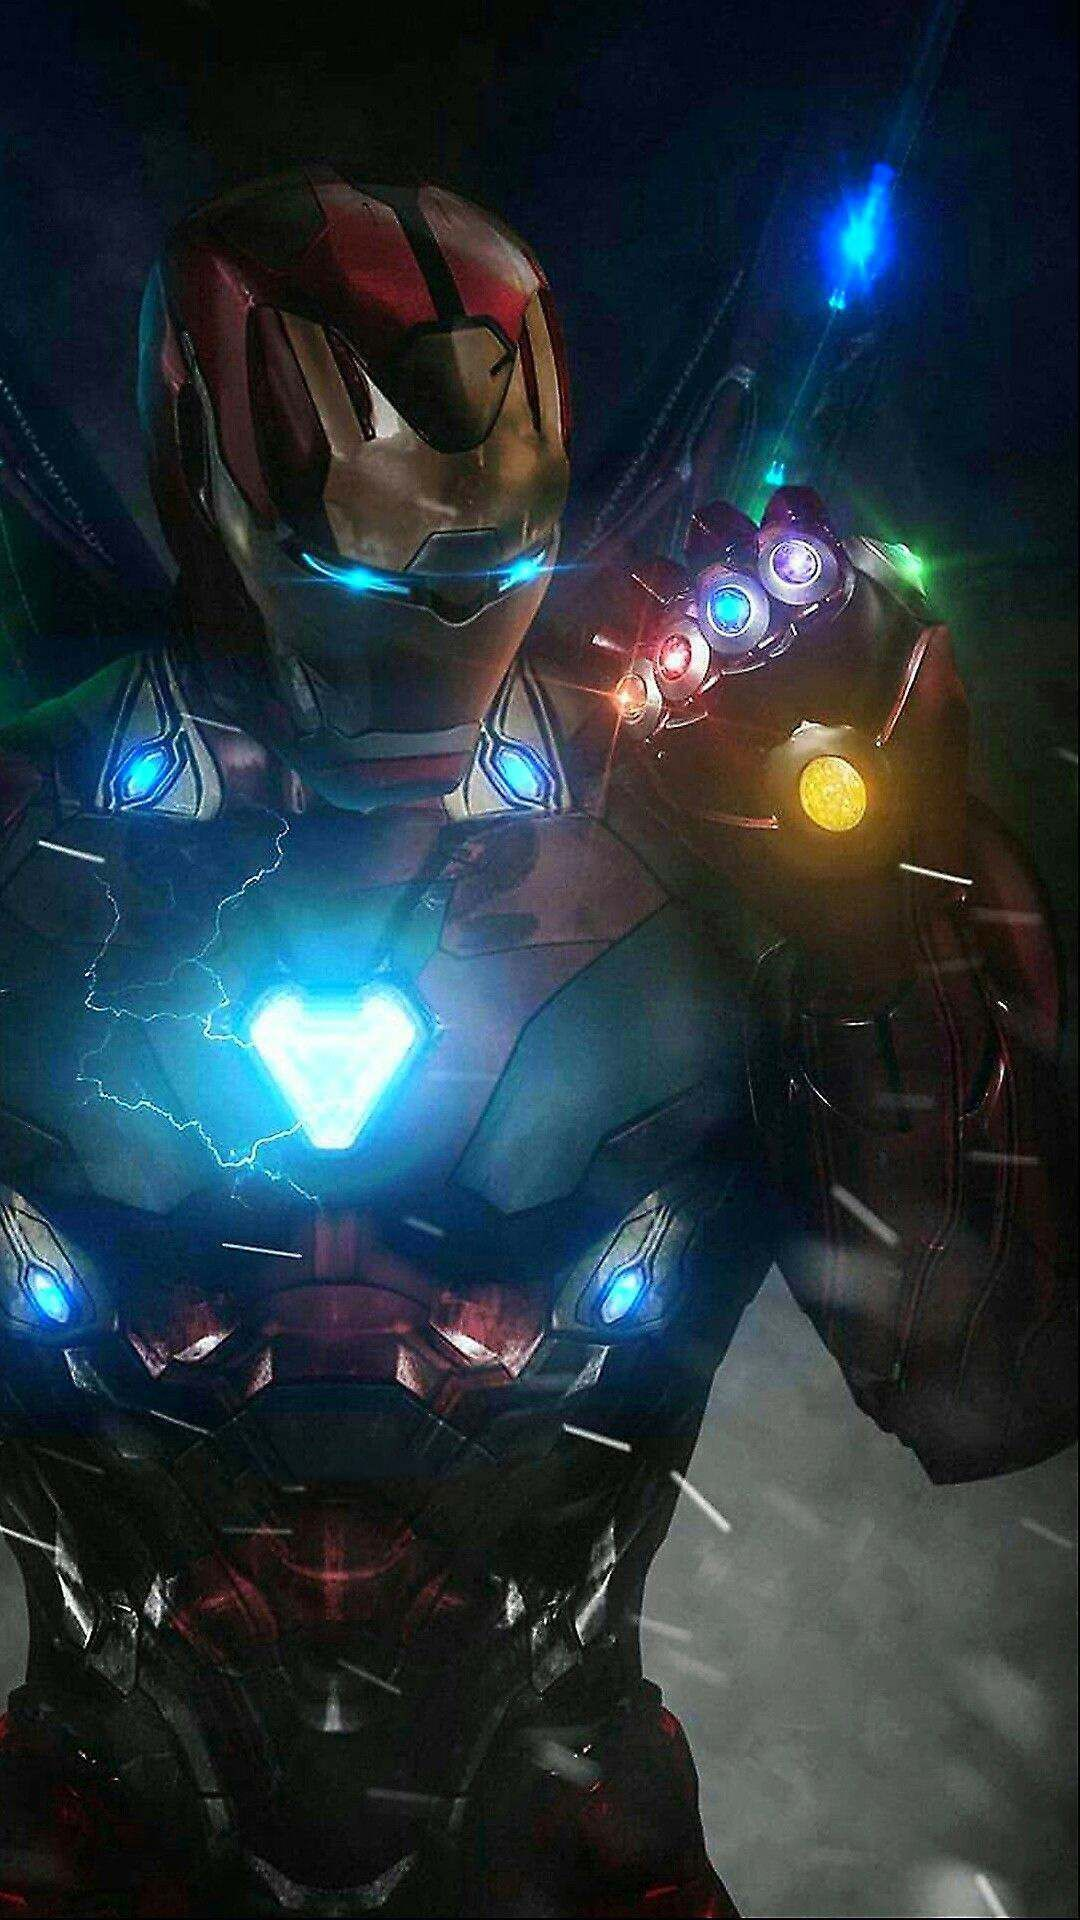 Iron Man Android Iphone Desktop Hd Backgrounds Wallpapers 1080p 4k 118667 Hdwallpapers Androi Iron Man Wallpaper Iron Man Avengers Marvel Artwork